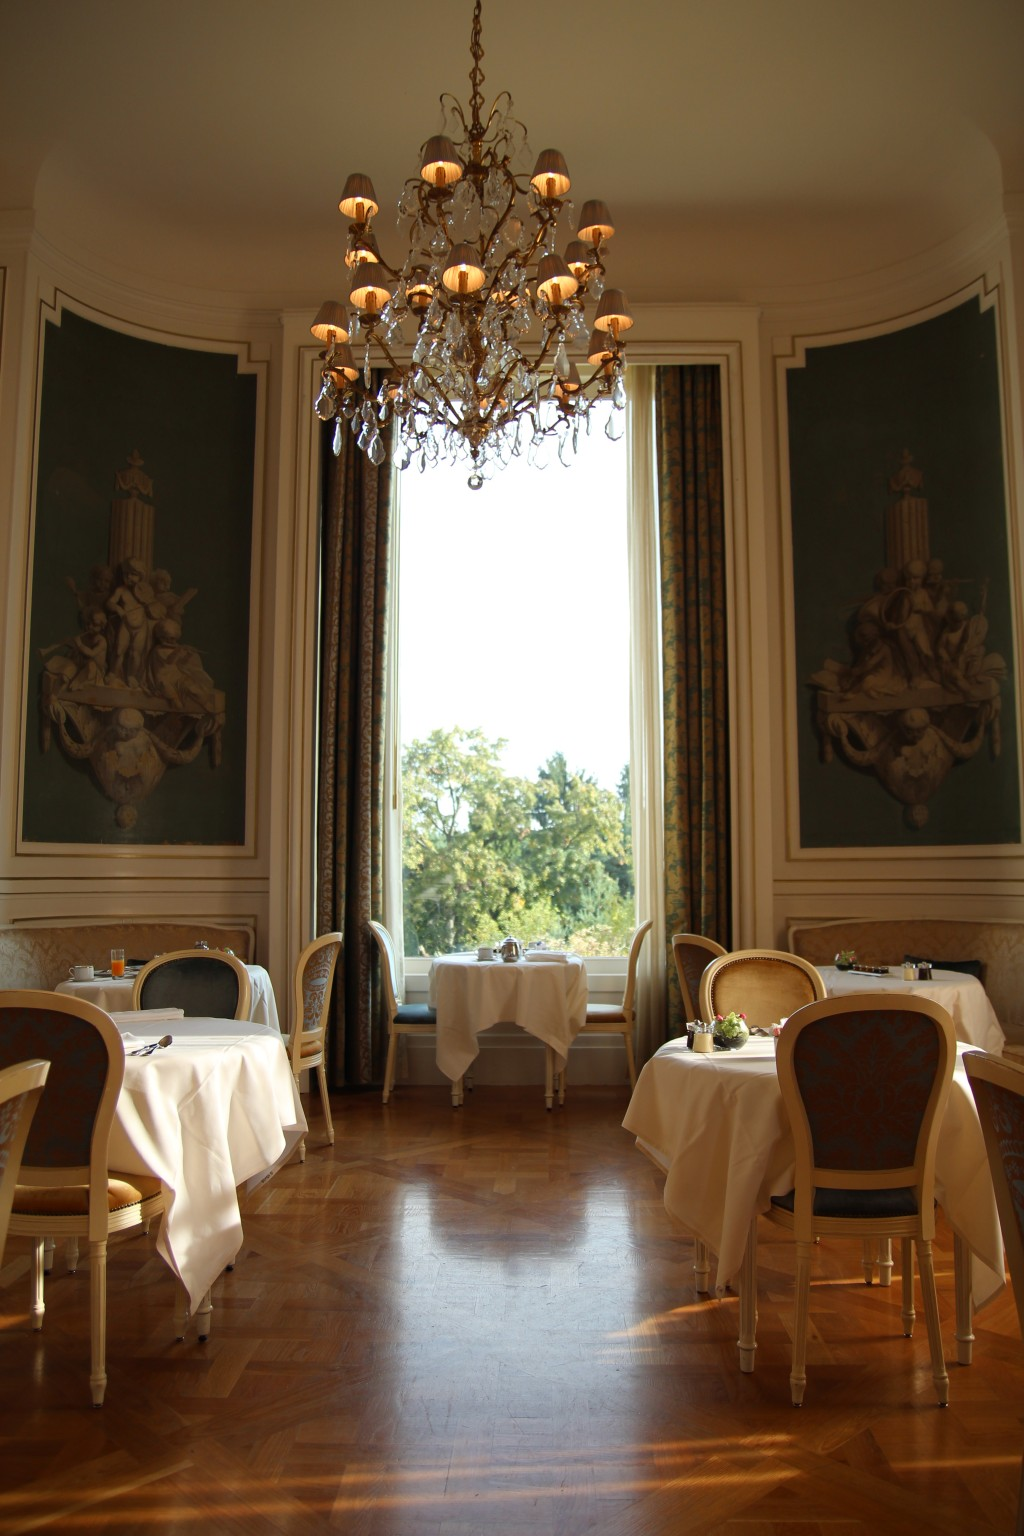 15 Hotel Mont Royal Chantilly (c) upupup.fr